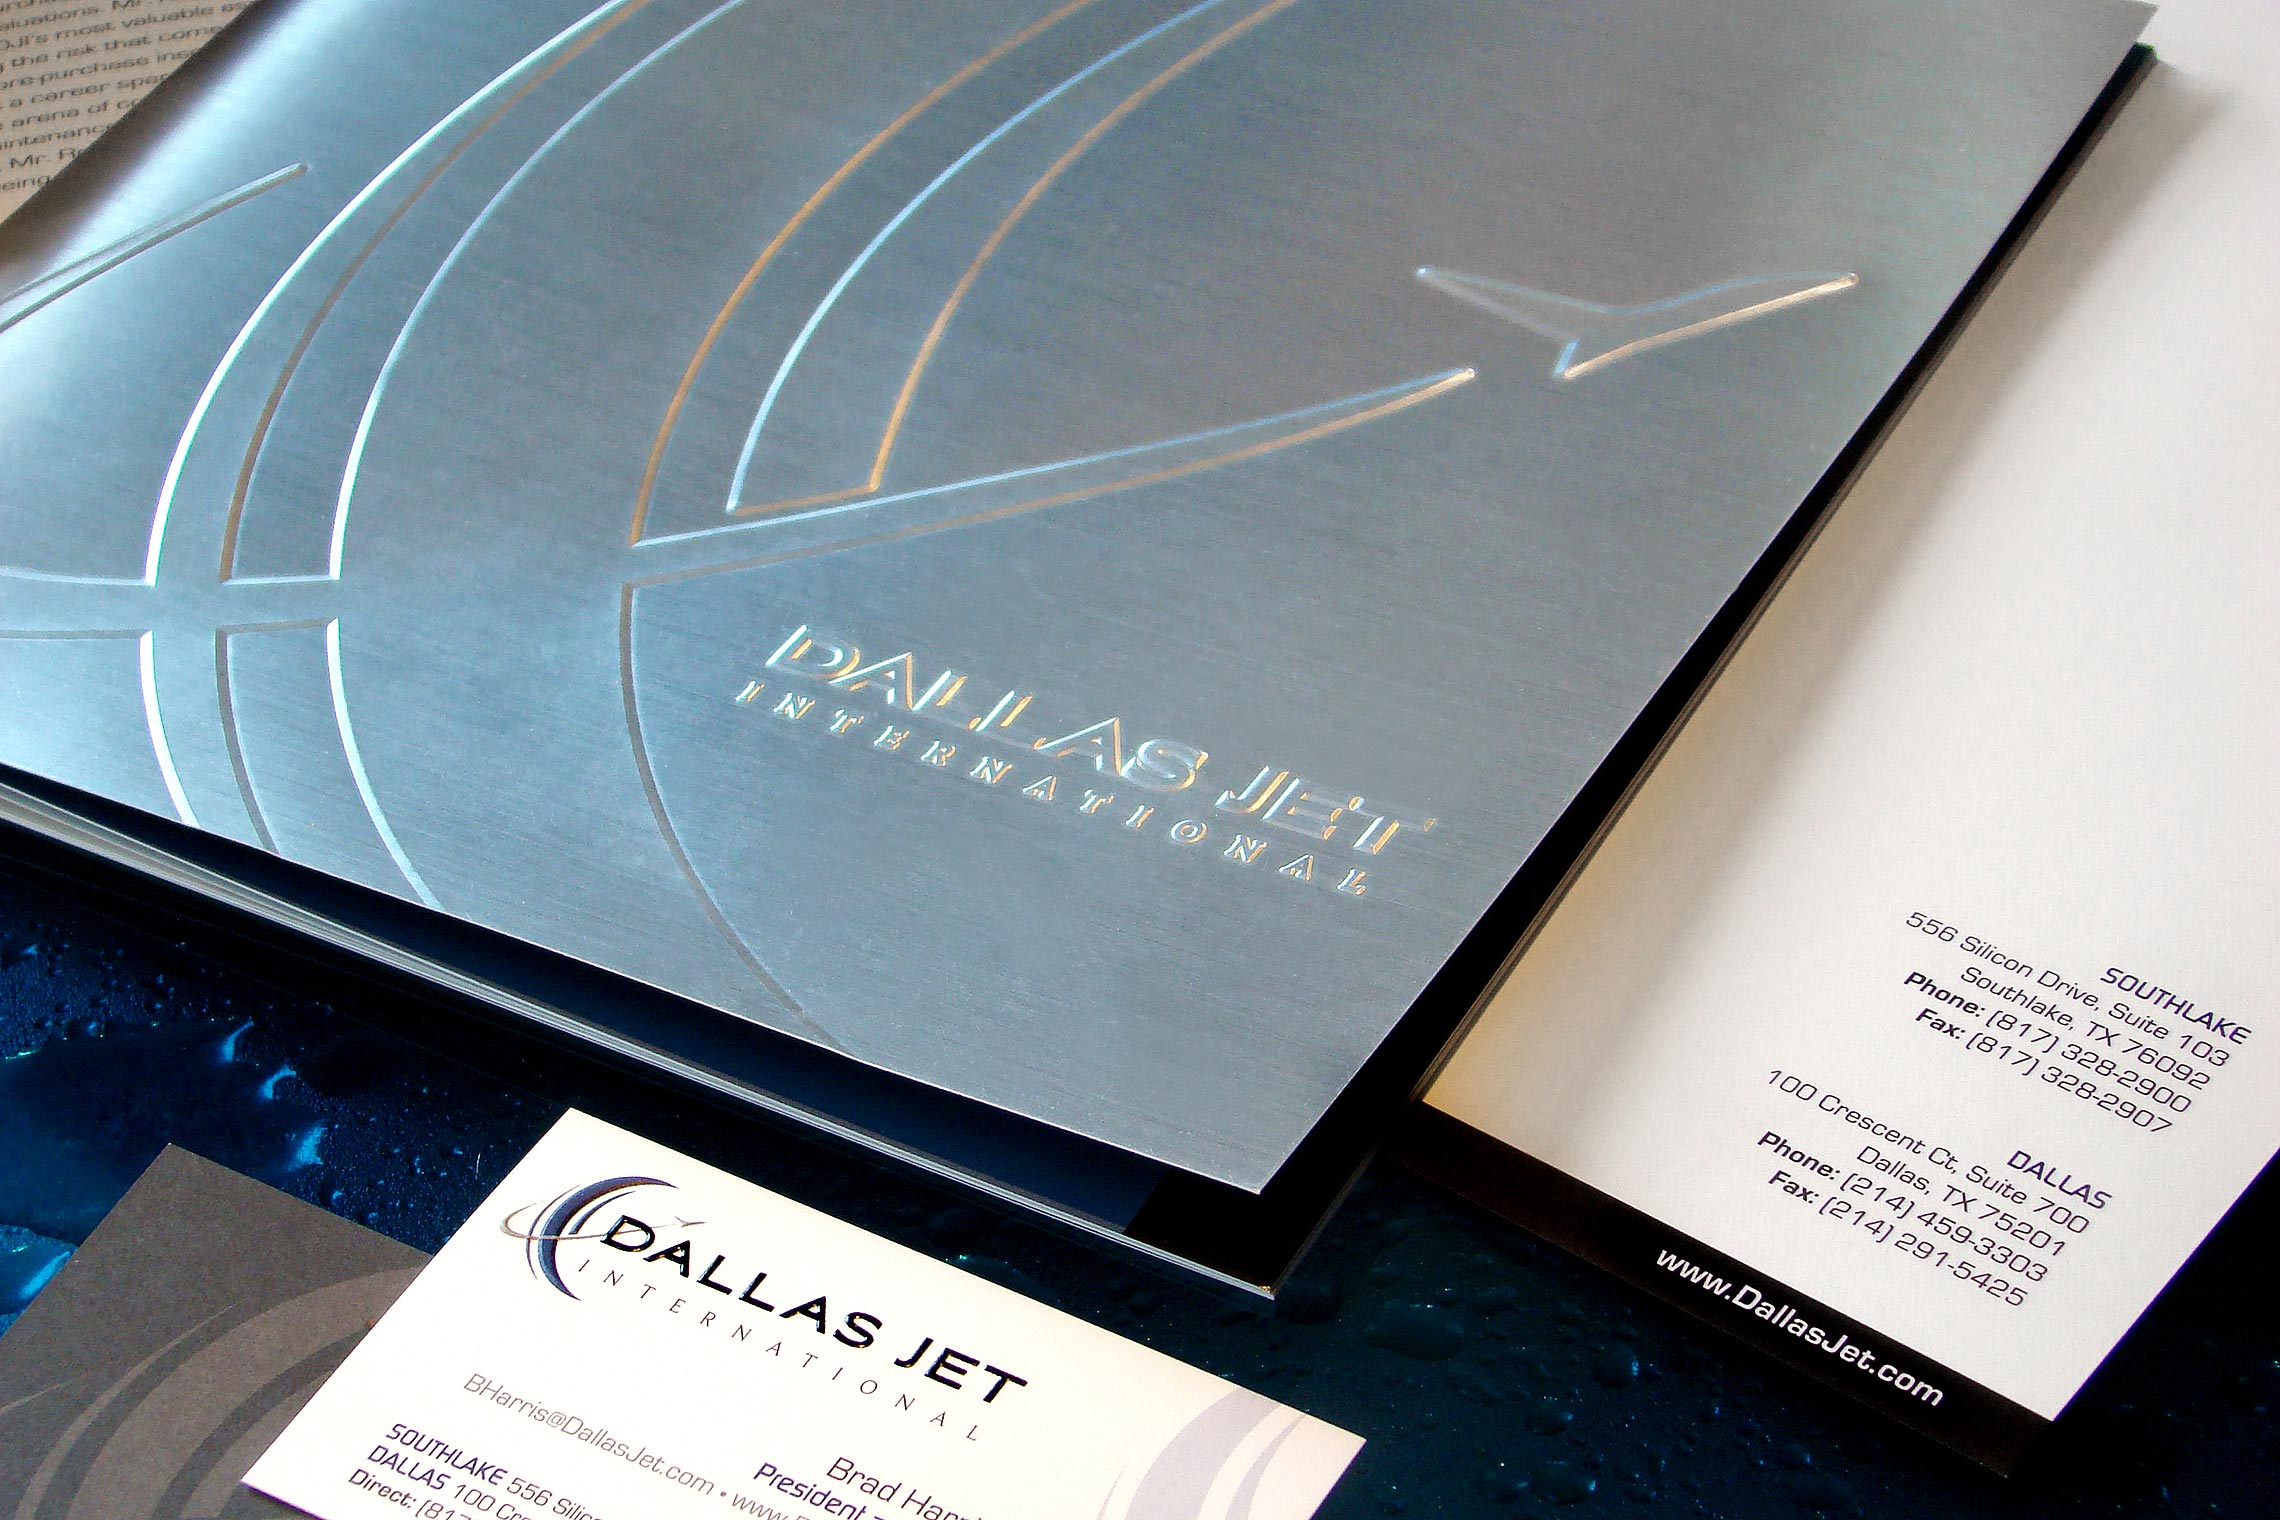 Dallas Jet International Custom Collateral - Pocket Folder Brochure, Letterhead and Business Card